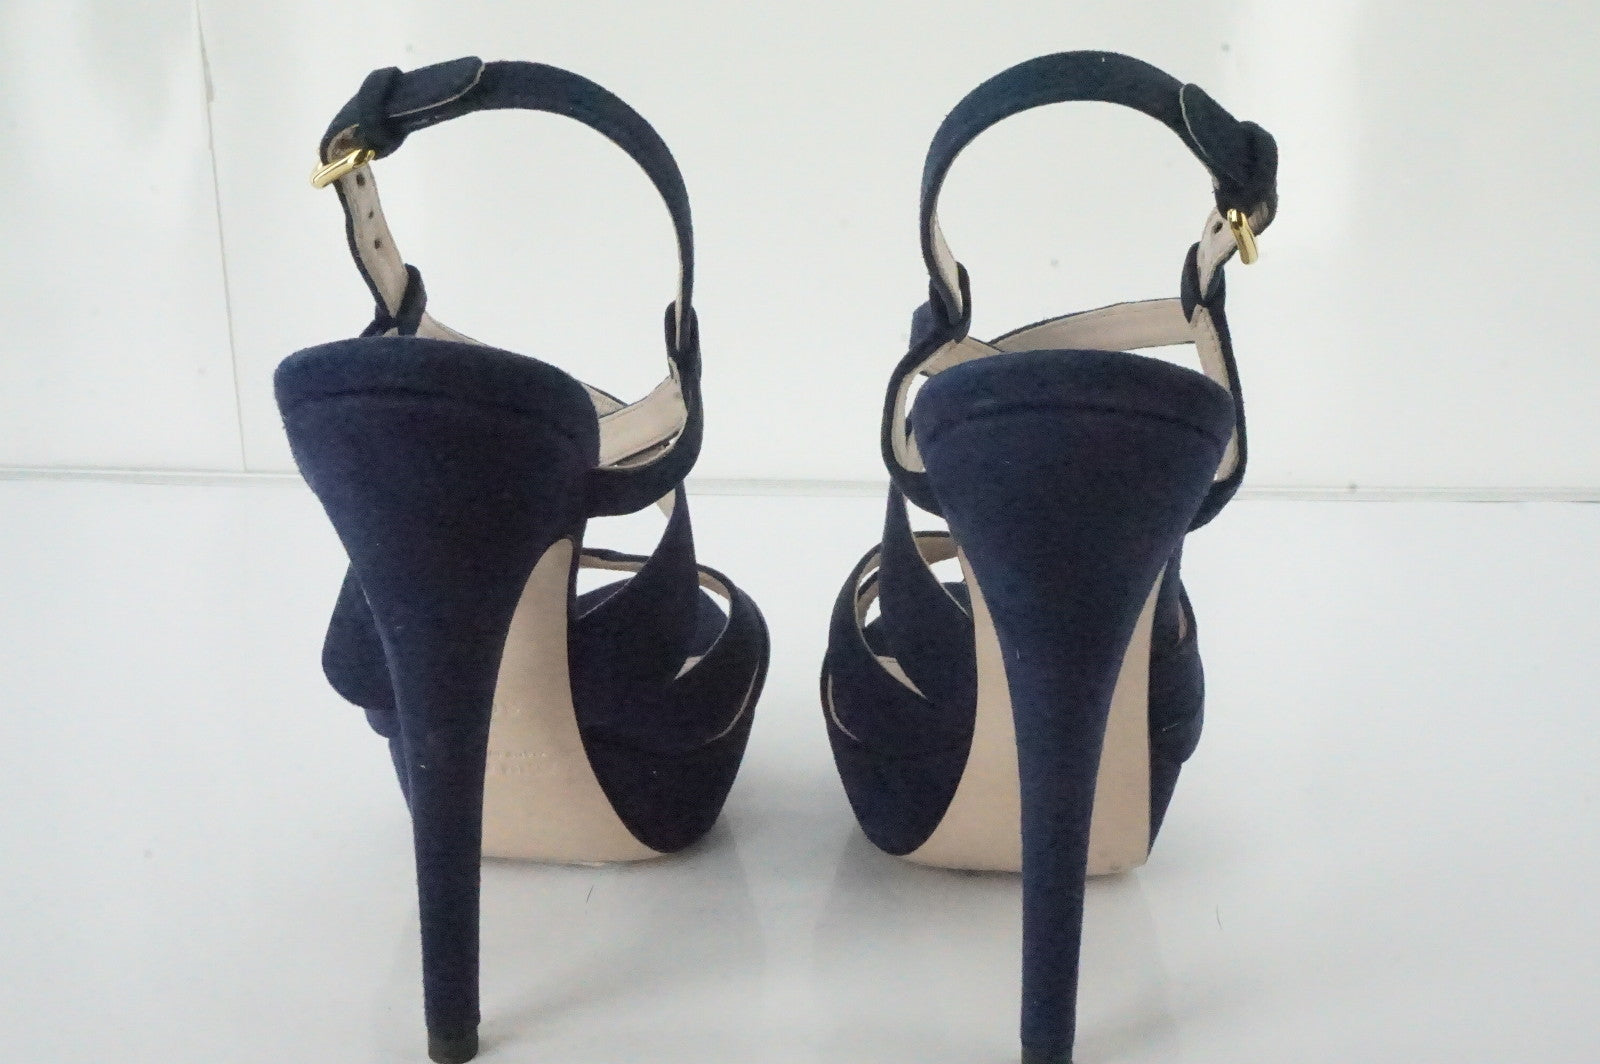 Miu Miu Blue Suede Strappy Platform Sandals Size 36.5 Navy High Heels New $795